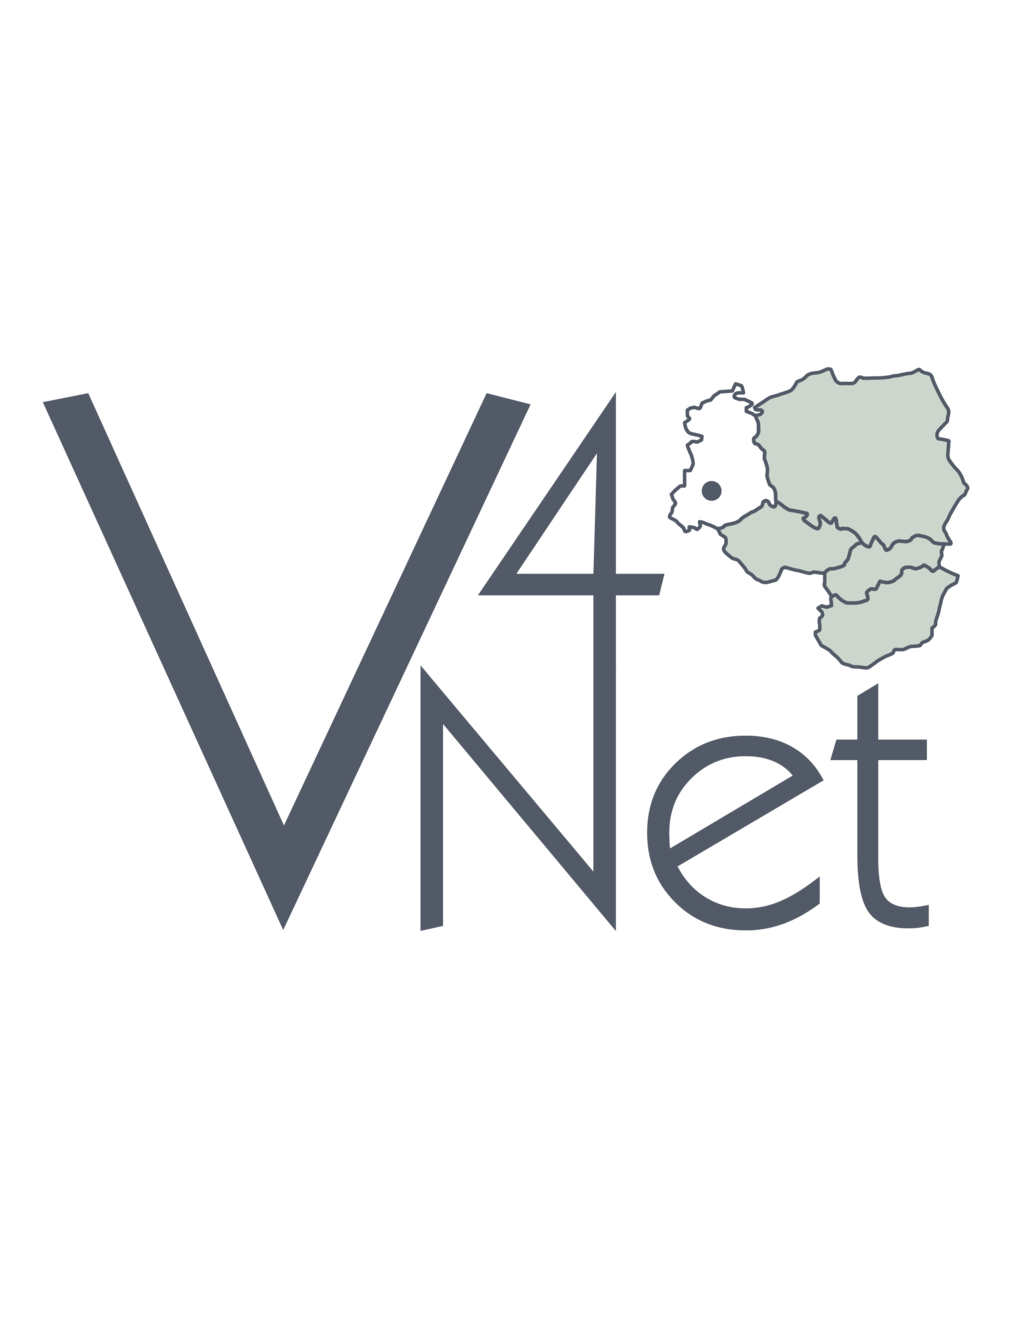 The Visegrád Anthropologists' Network is a loose cooperation of socio-cultural anthropologists dedicated primarily to investigating contemporary social phenomena in the Czech Republic, Hungary, Poland and Slovakia (the V4).